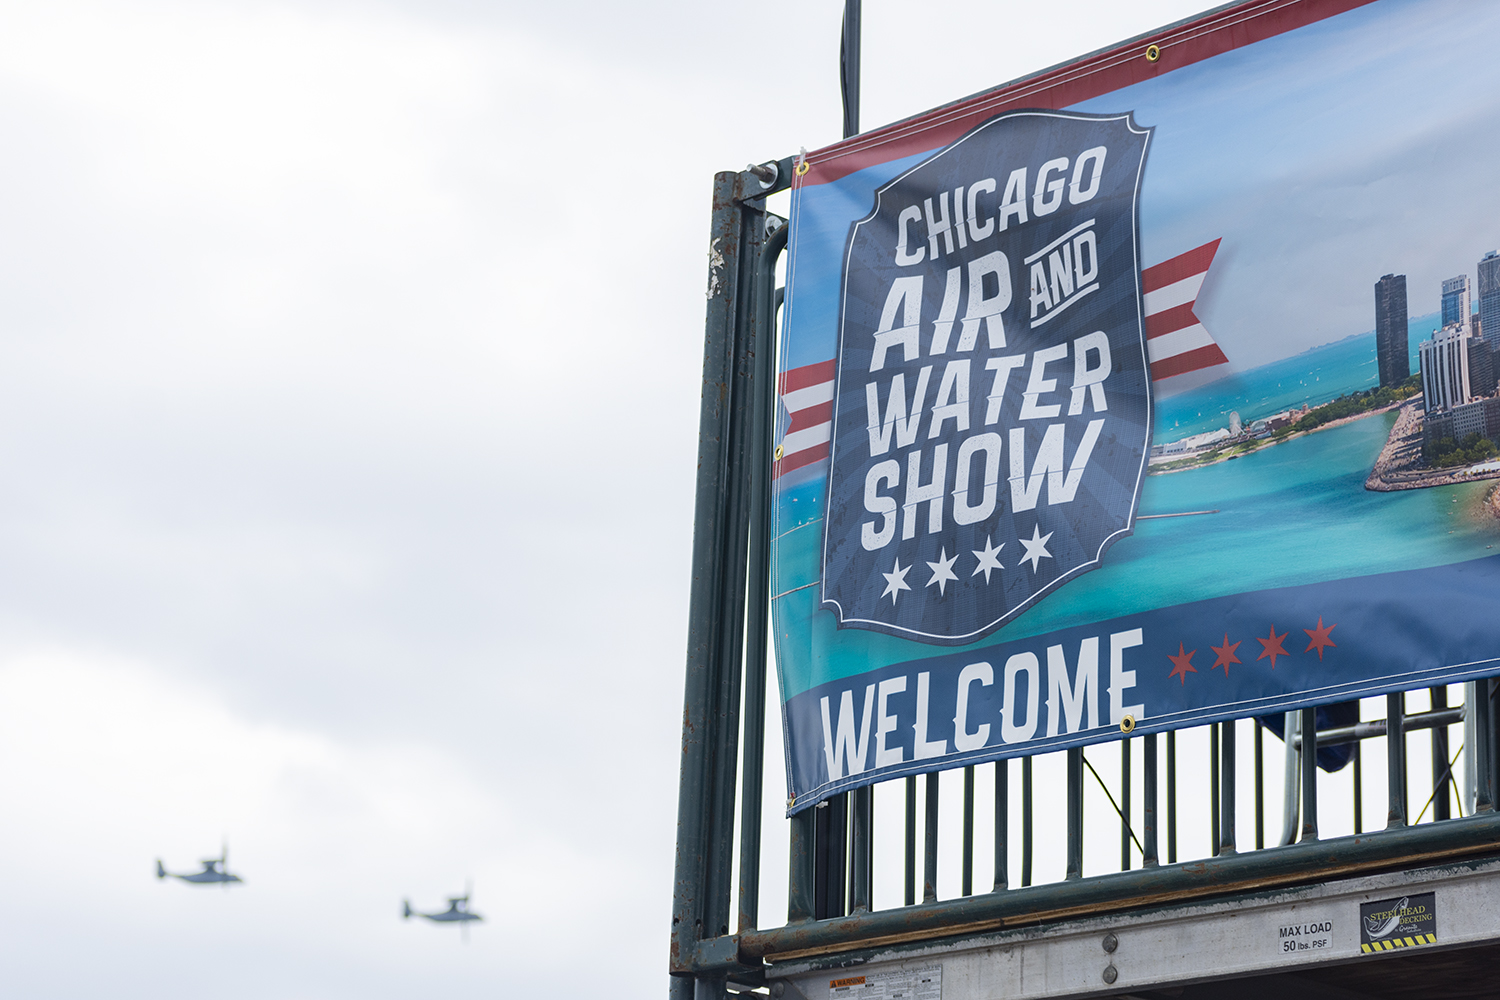 The+61st+annual+Chicago+Air+and+Water+Show+occupied+the+skies+along+Lake+Michigan+Aug.+17%E2%80%9318.